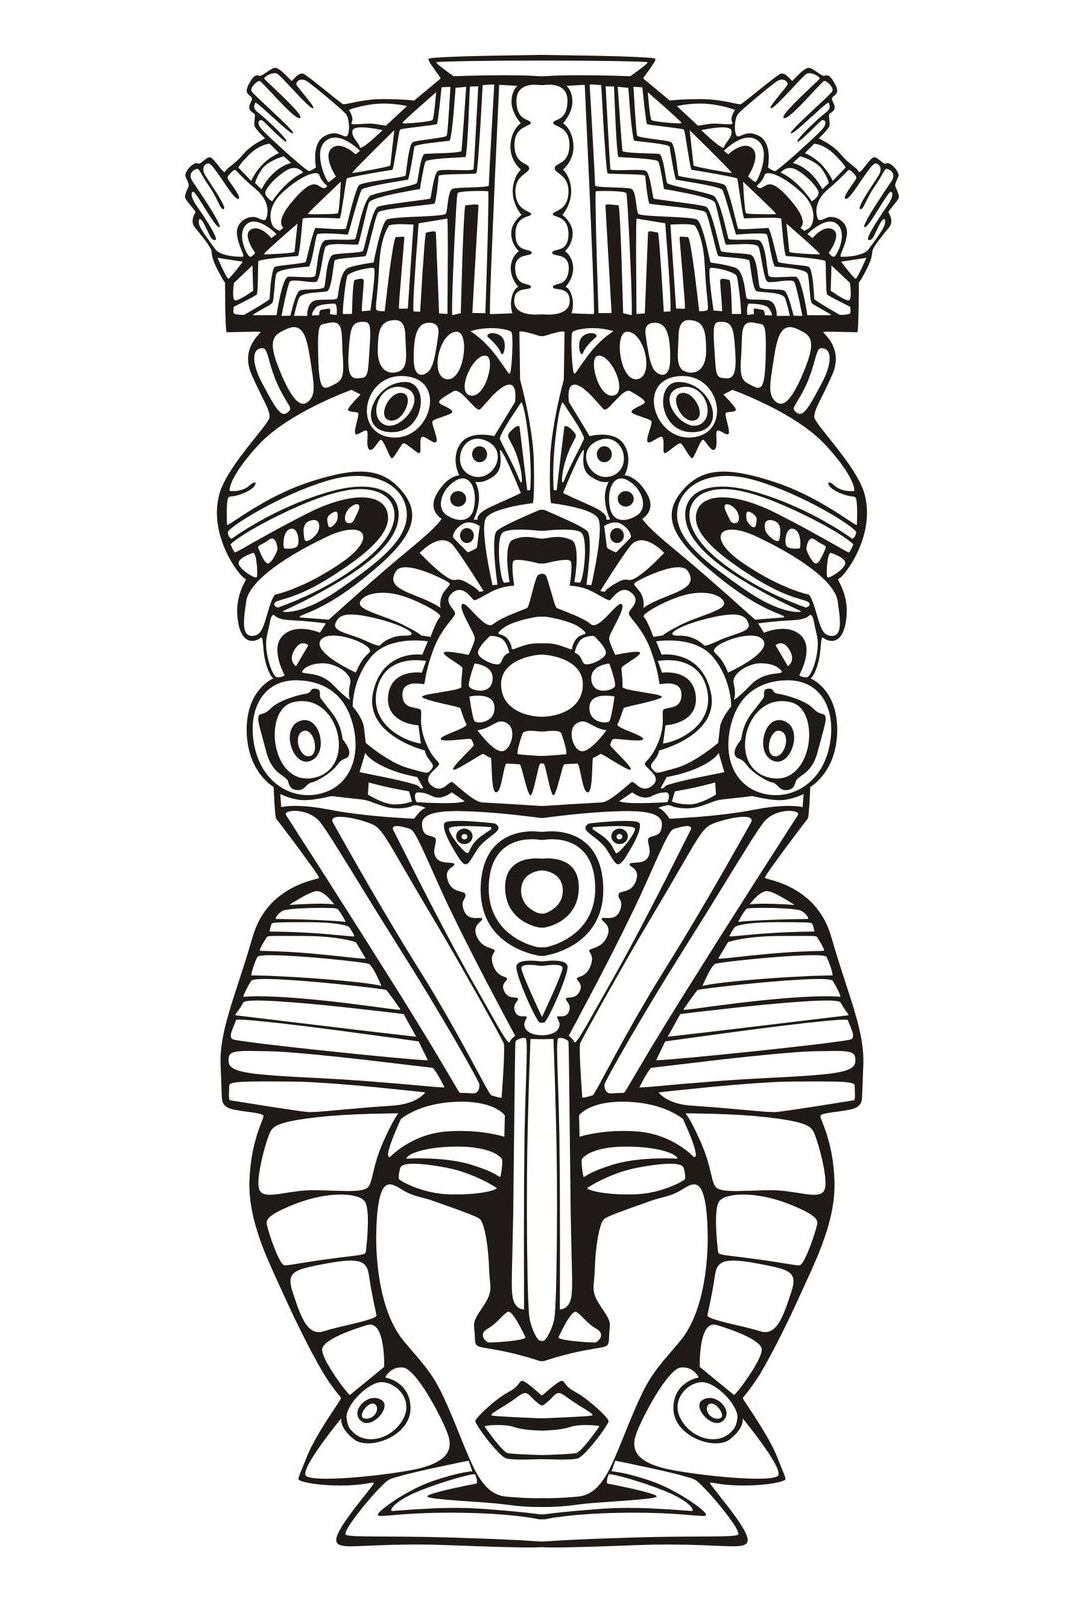 Incredible Masks coloring page to print and color for free